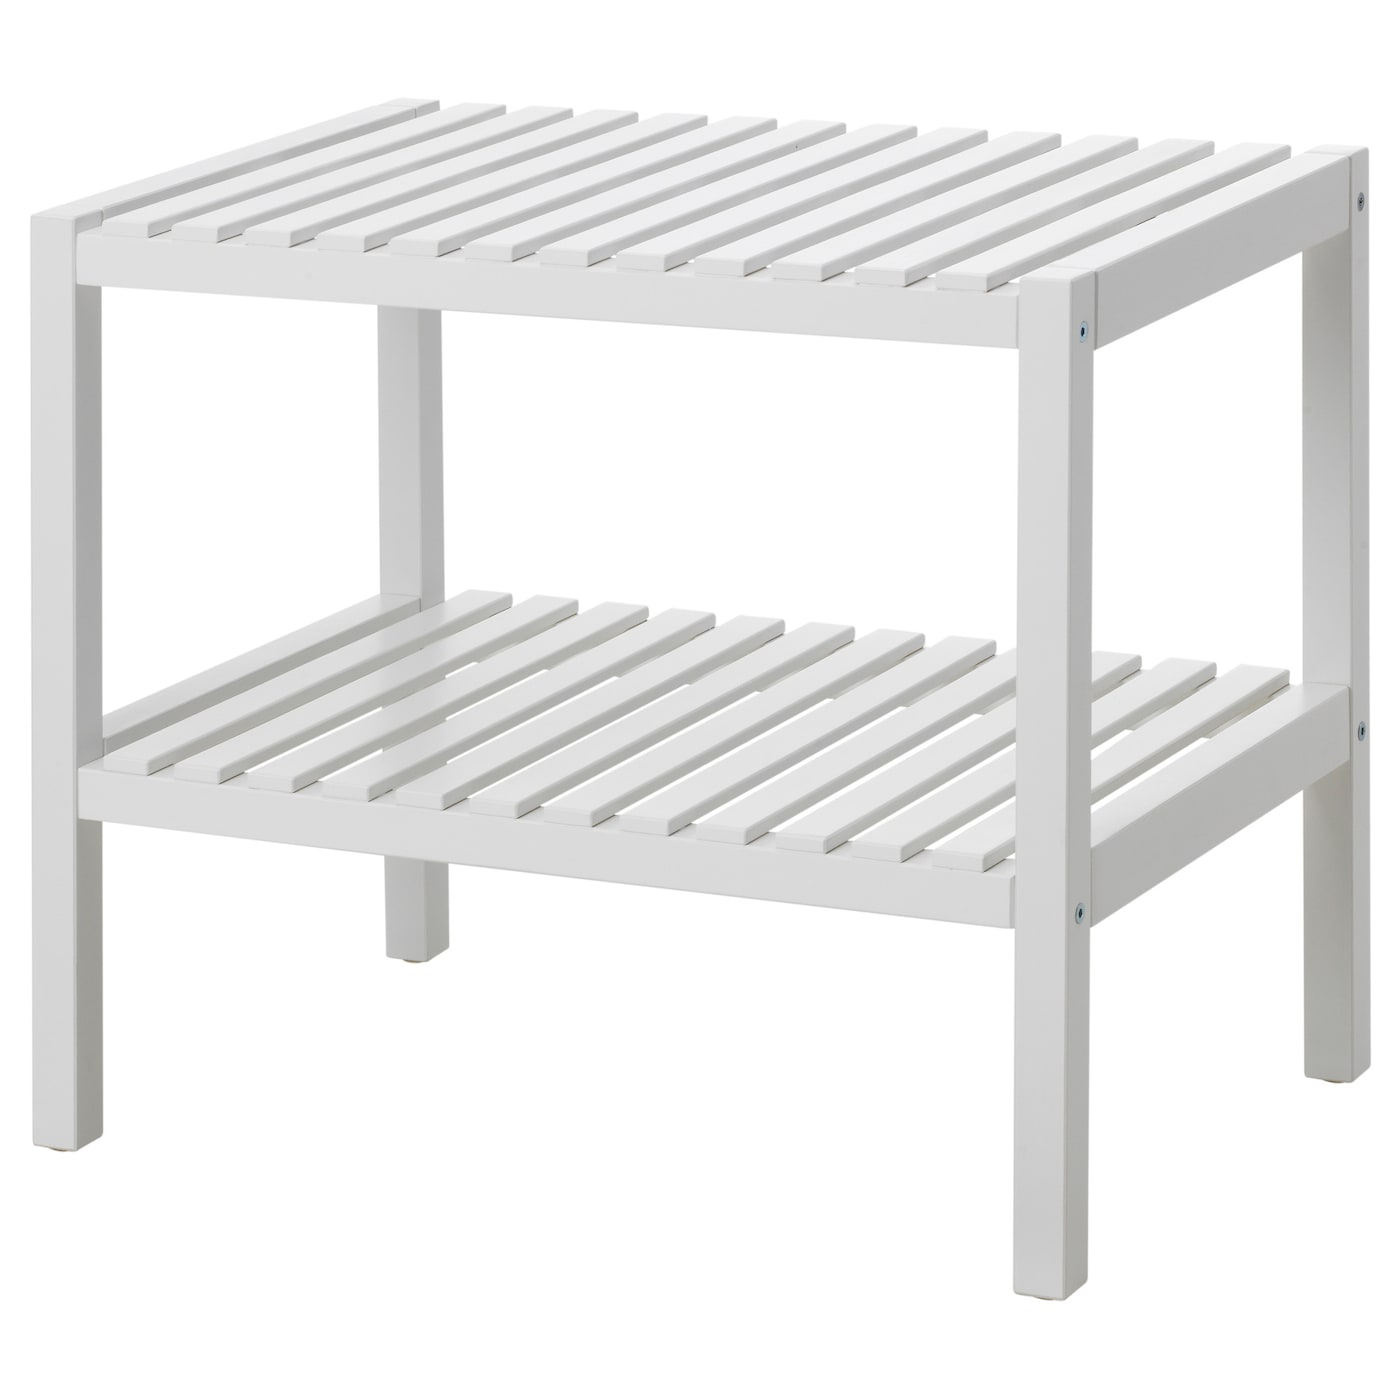 IKEA MUSKAN bench Suitable for use in high humidity areas since it is water-resistant.